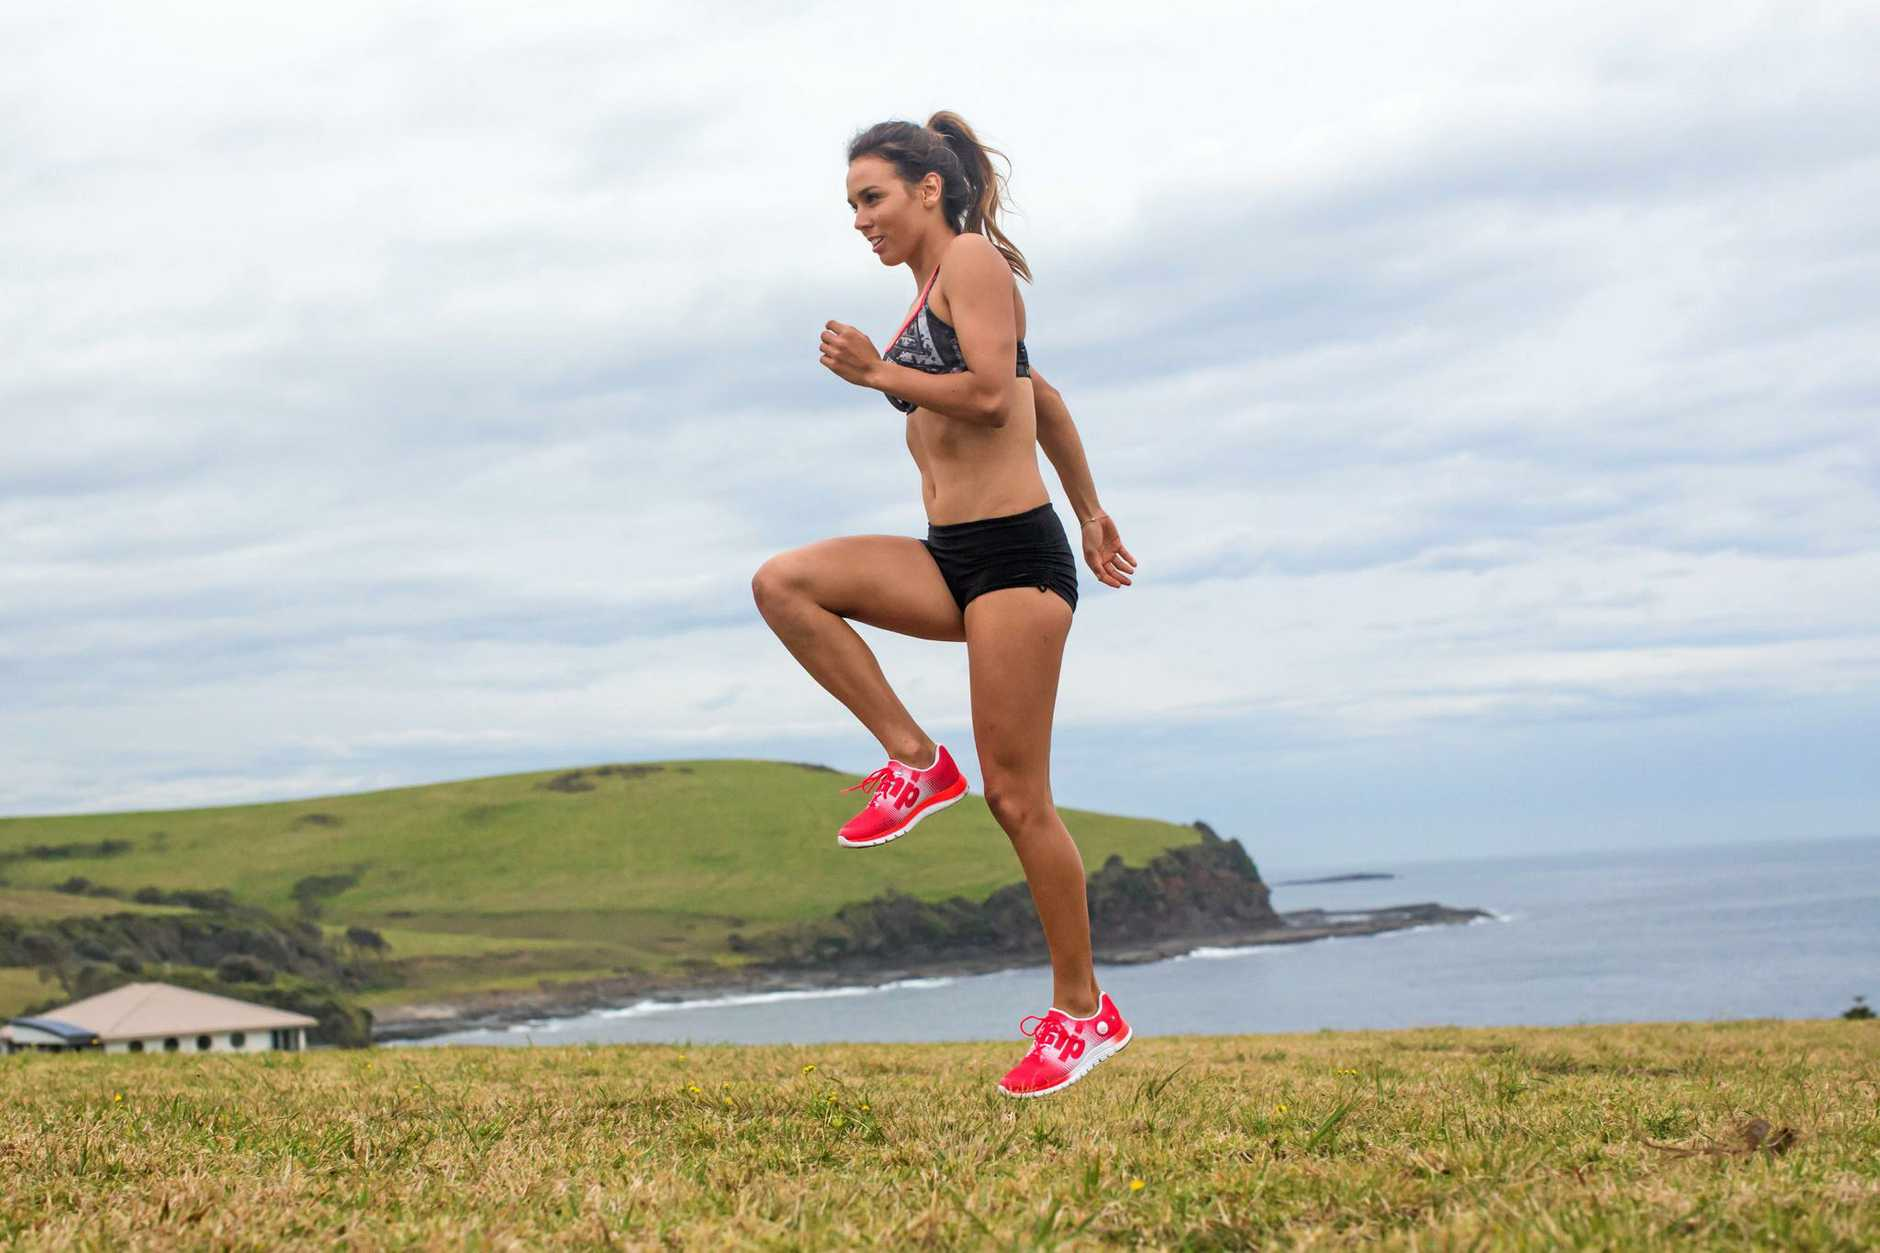 Week 2, Train Like Sally Workout, for Weekend magazine use only.